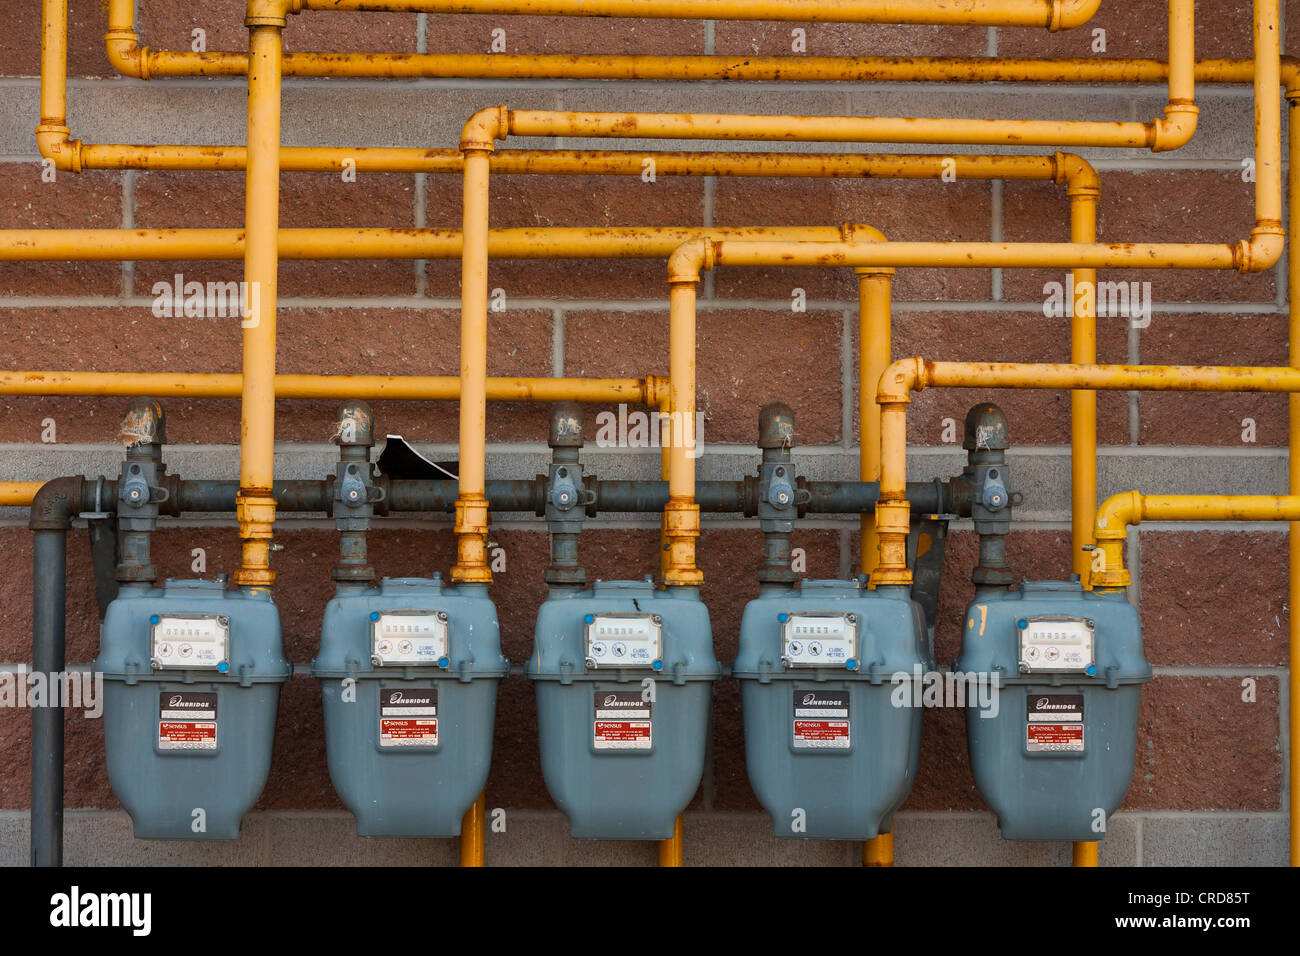 Five Enbridge Gas Meters A Row Of Gas Meters Connected By A Maze Of Yellow